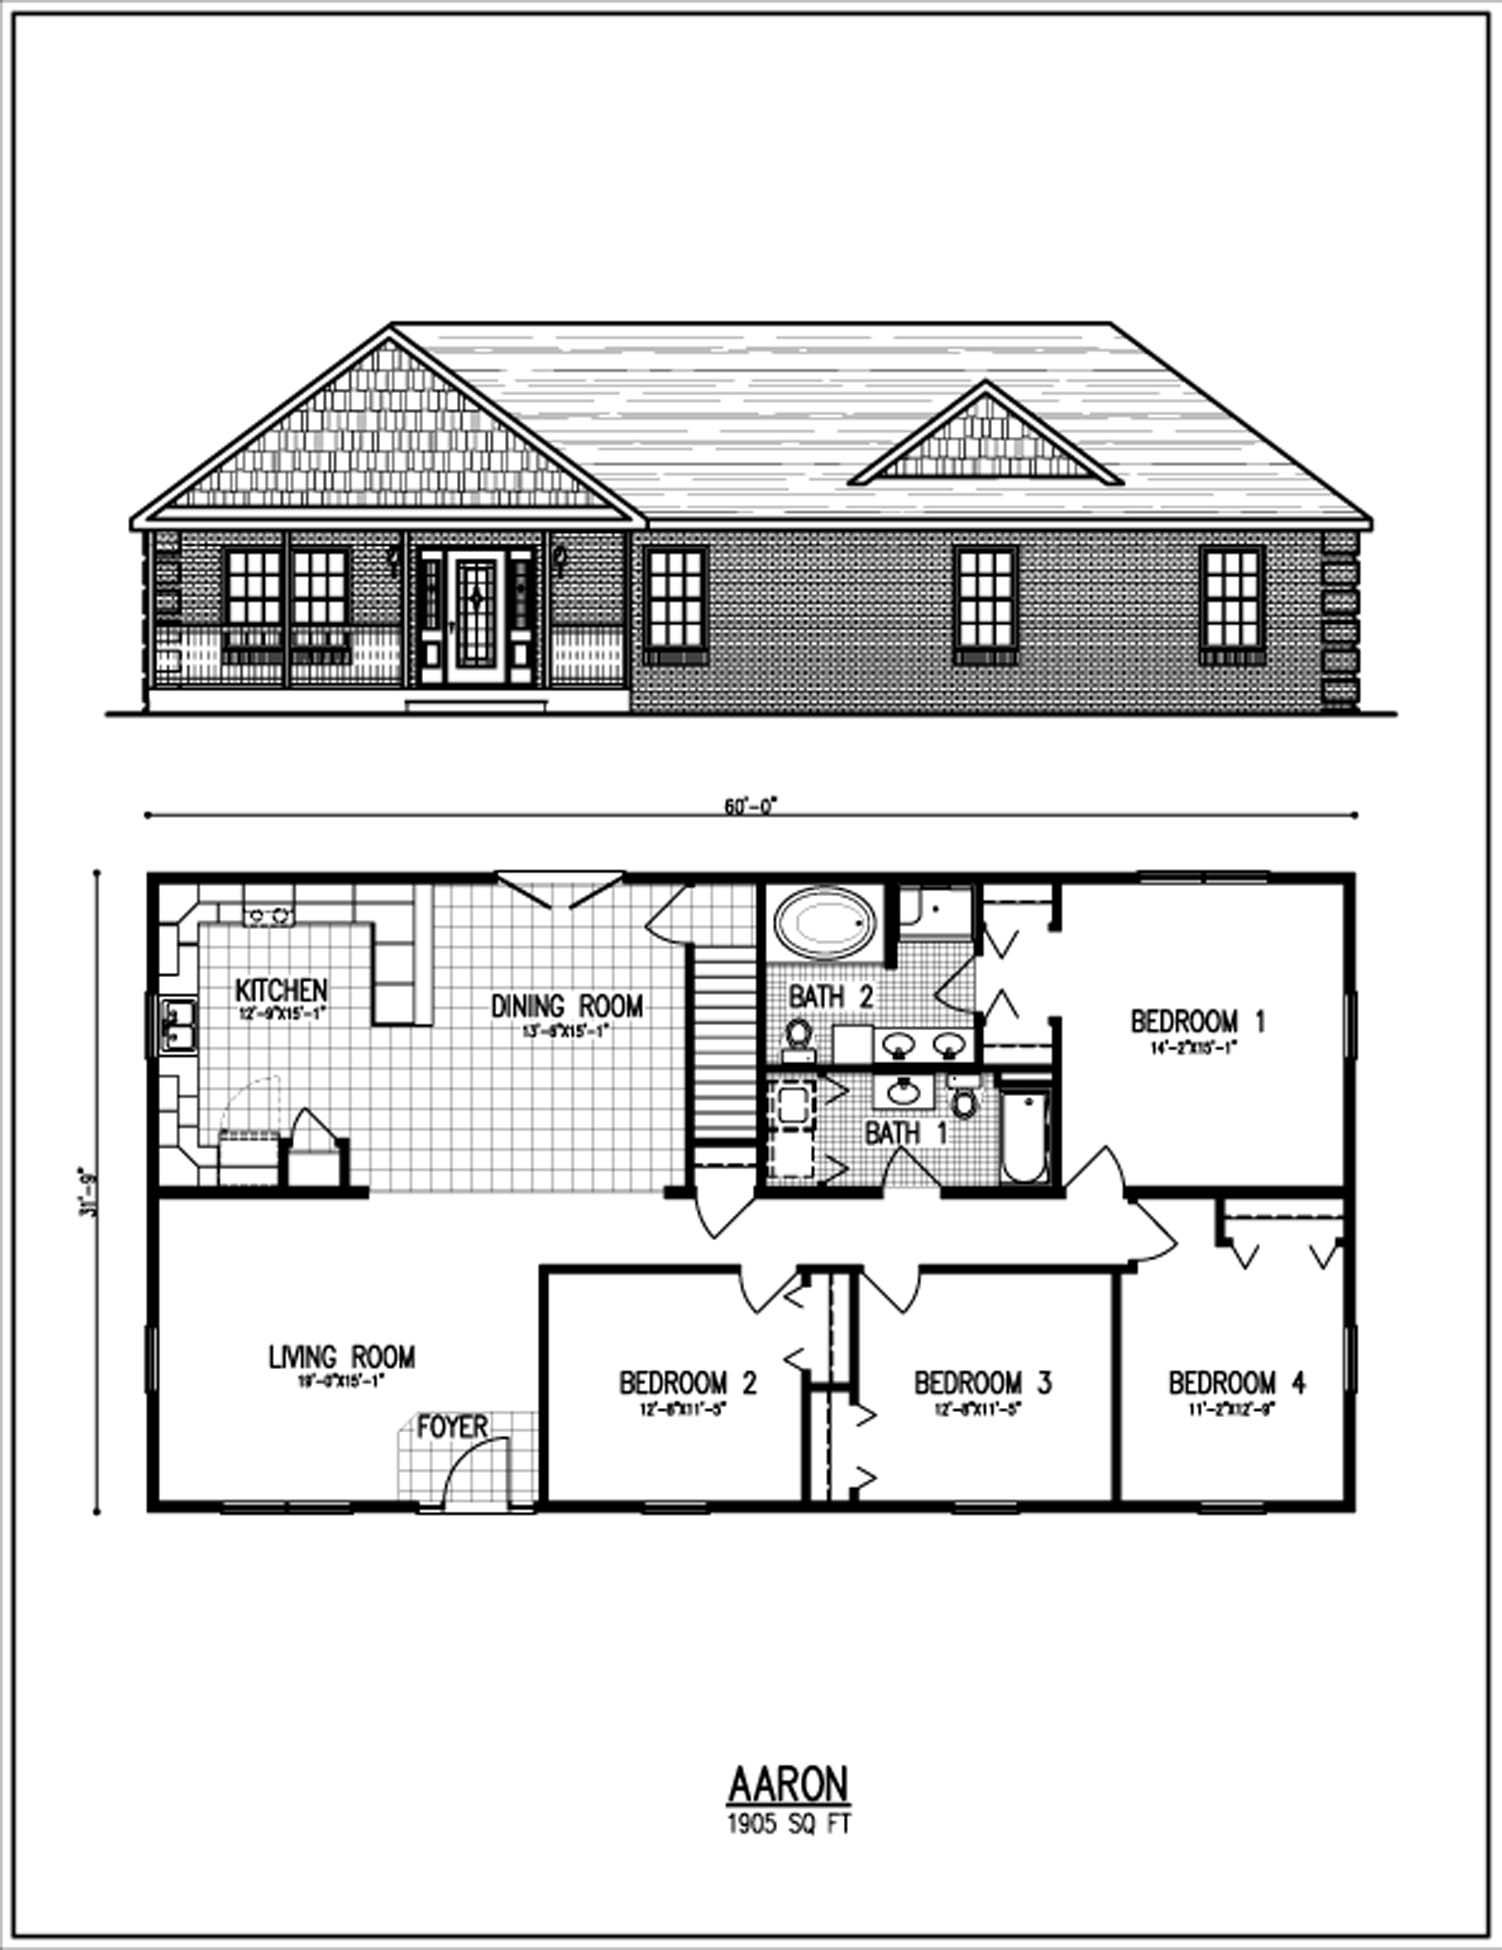 All american homes floorplan center staffordcape for One story ranch style home floor plans